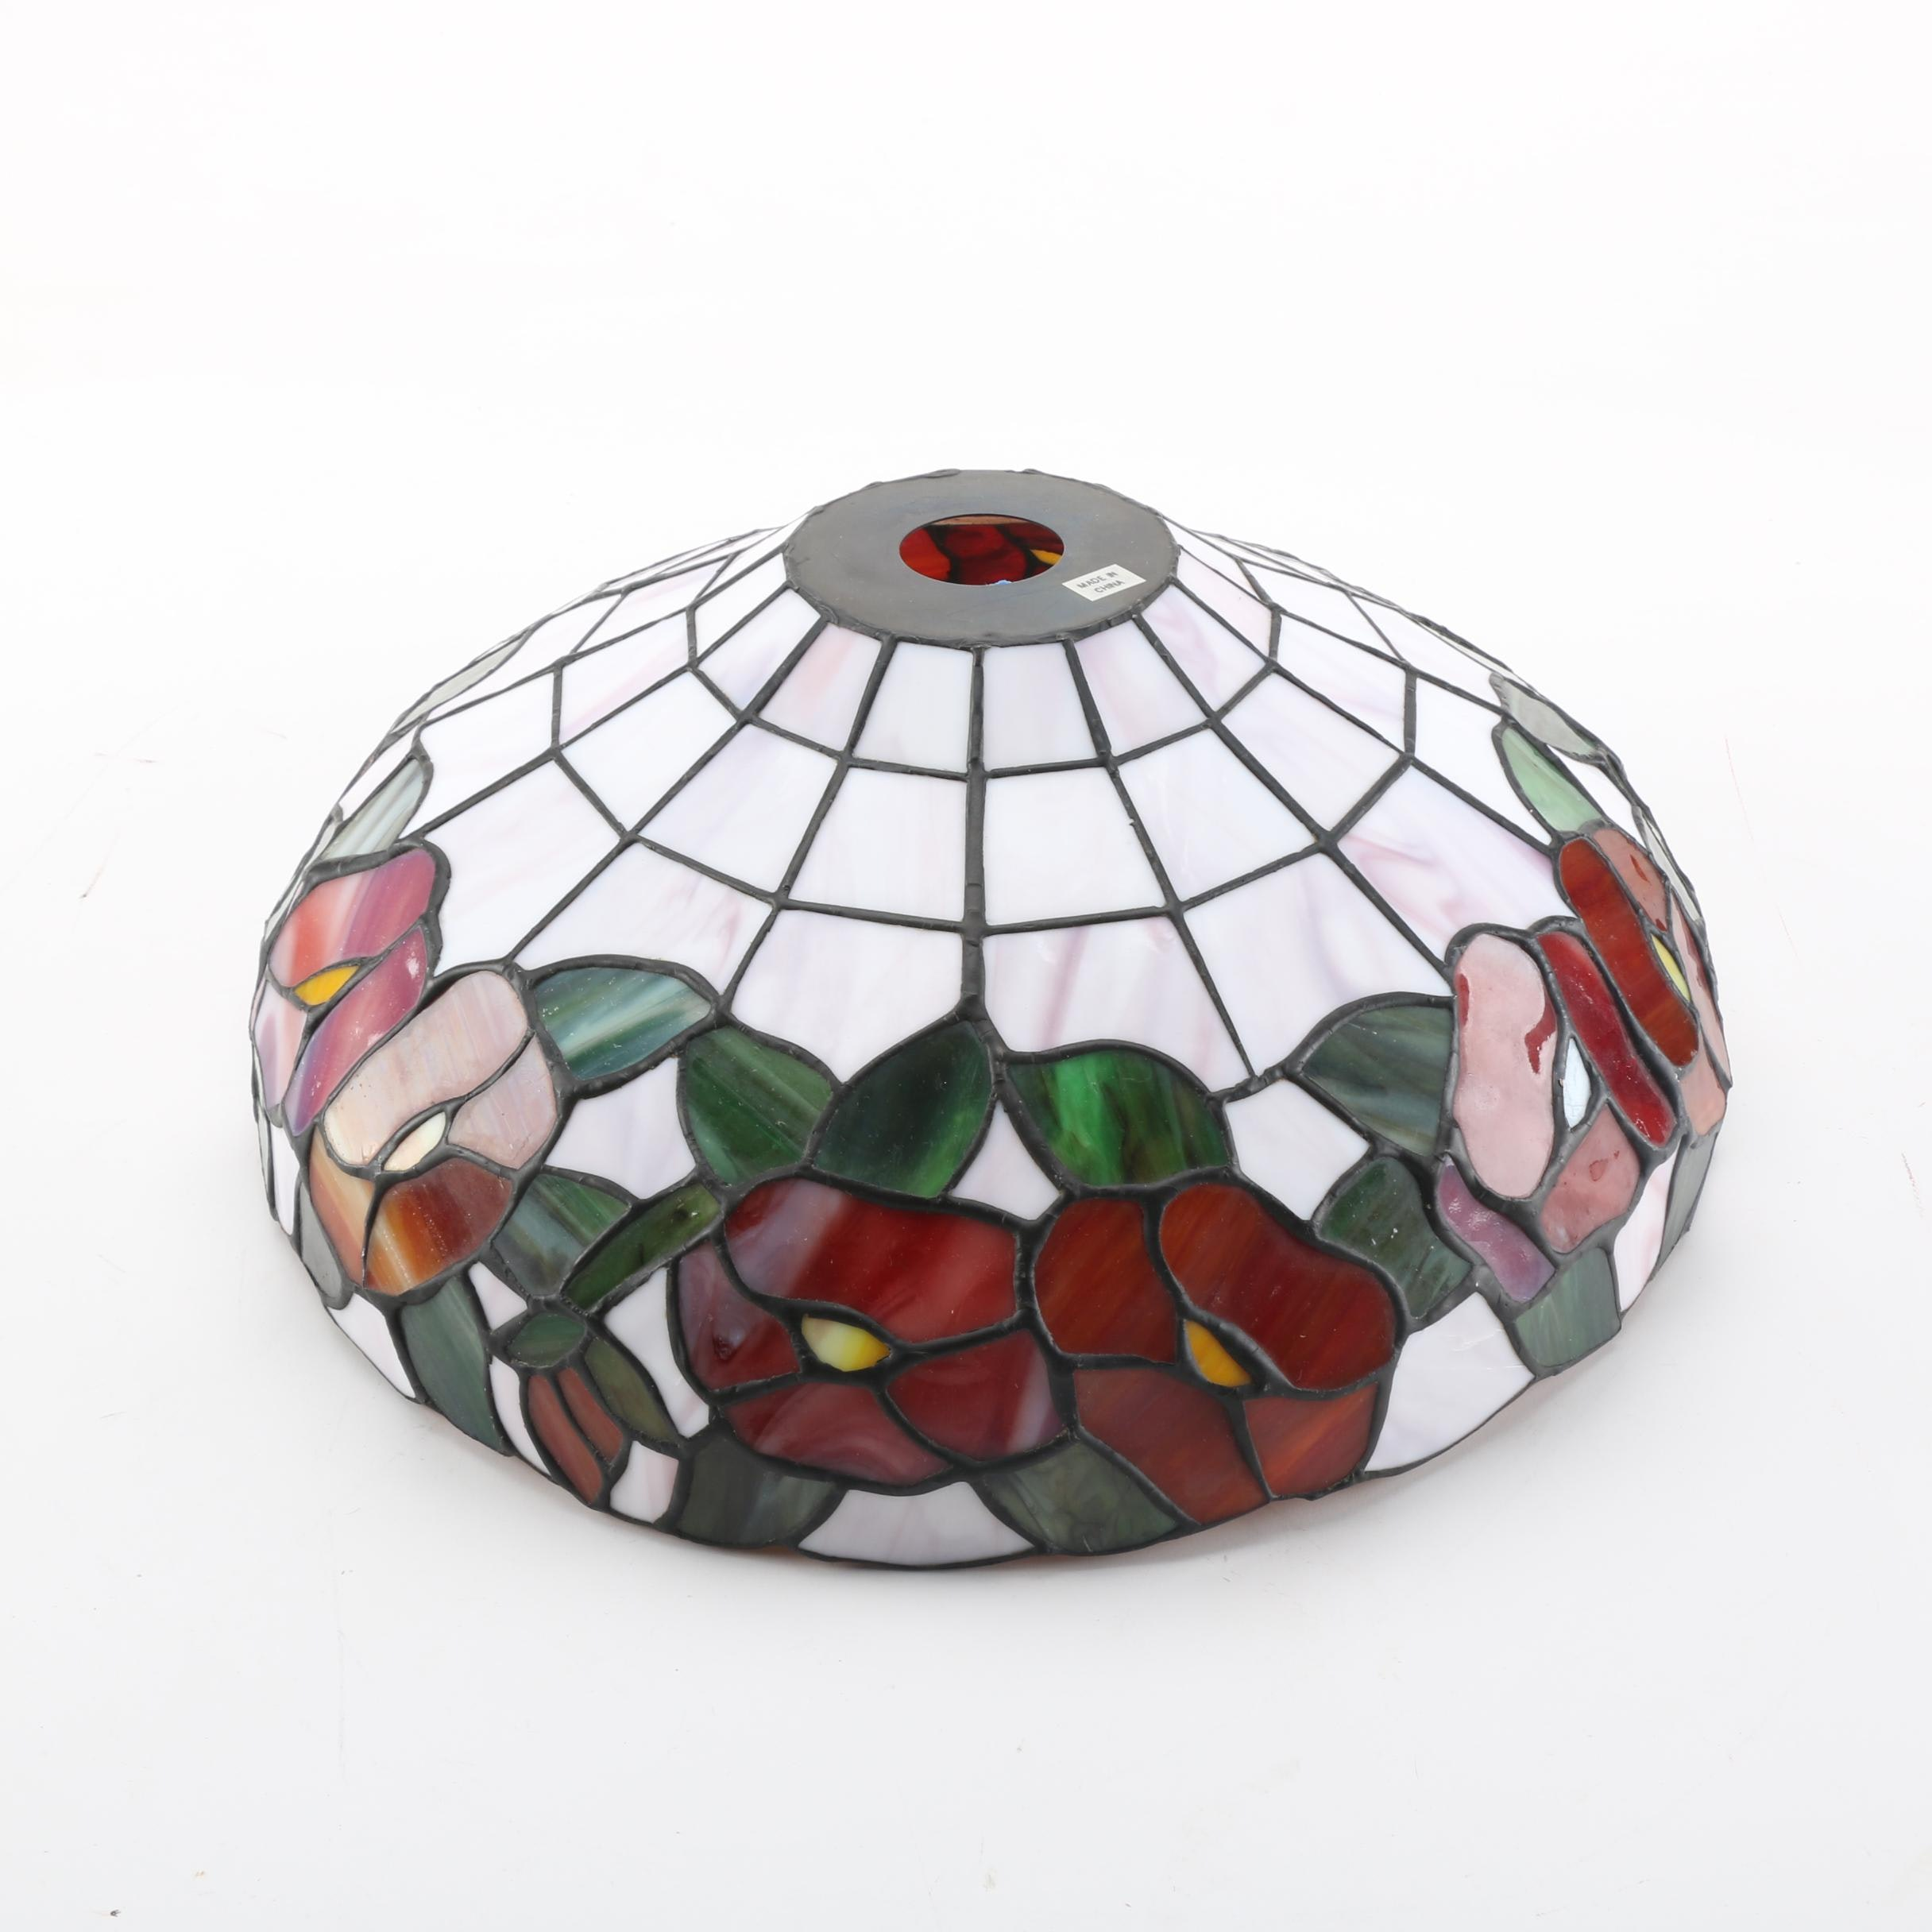 Stained Glass Floral Motif Lampshade